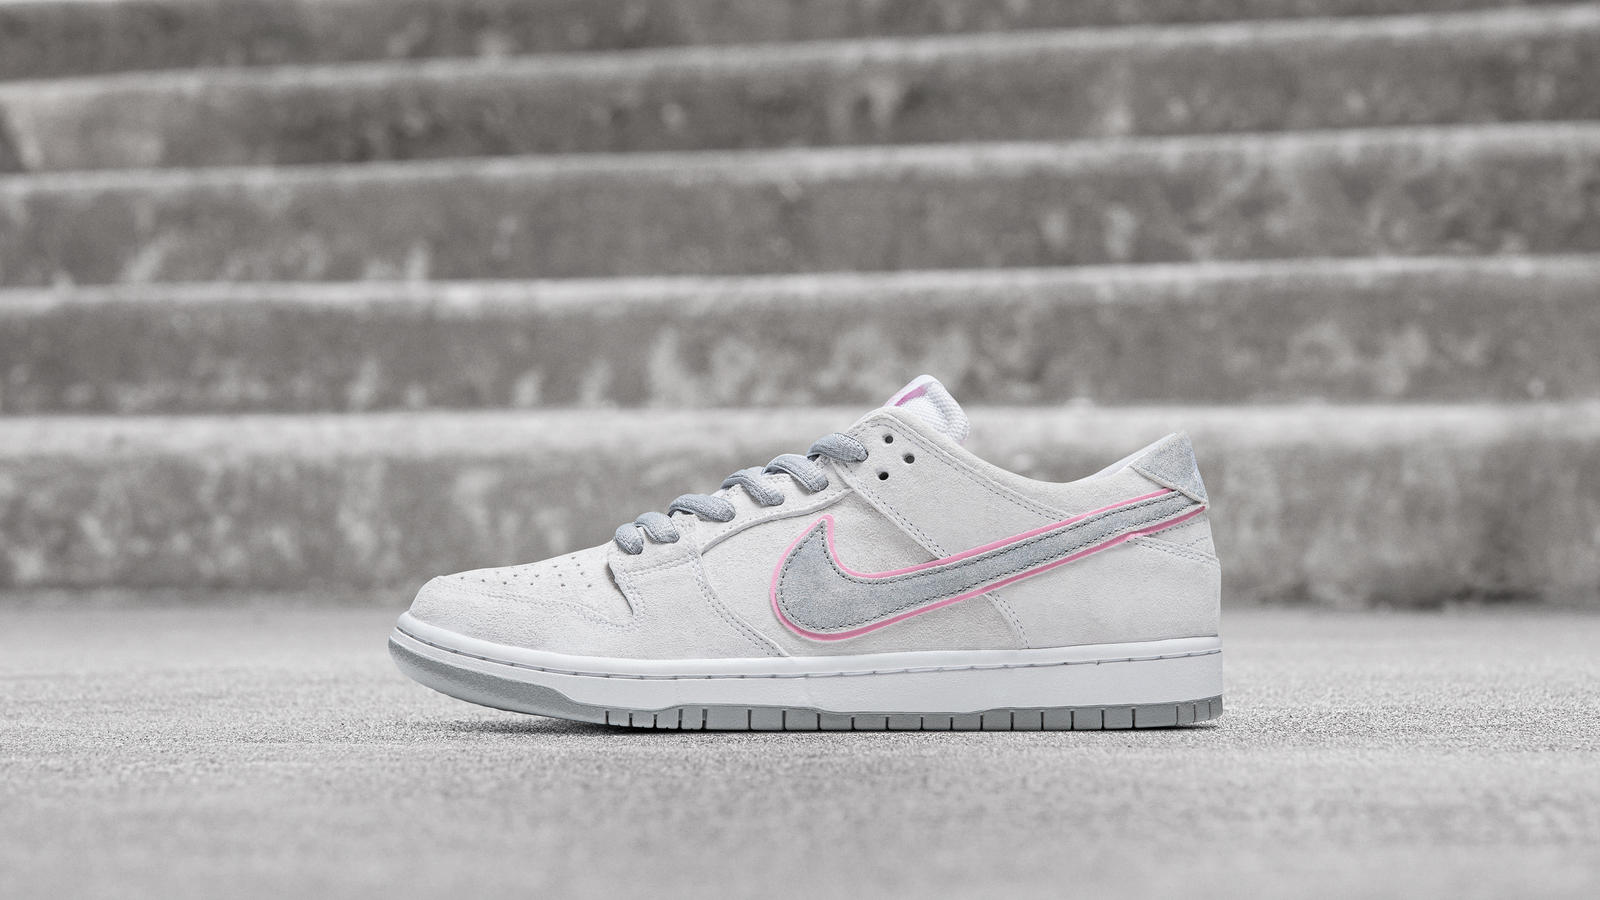 best sneakers ee51b c6075 Nike SB Dunk Low Pro 'Ishod Wair' - Nike News